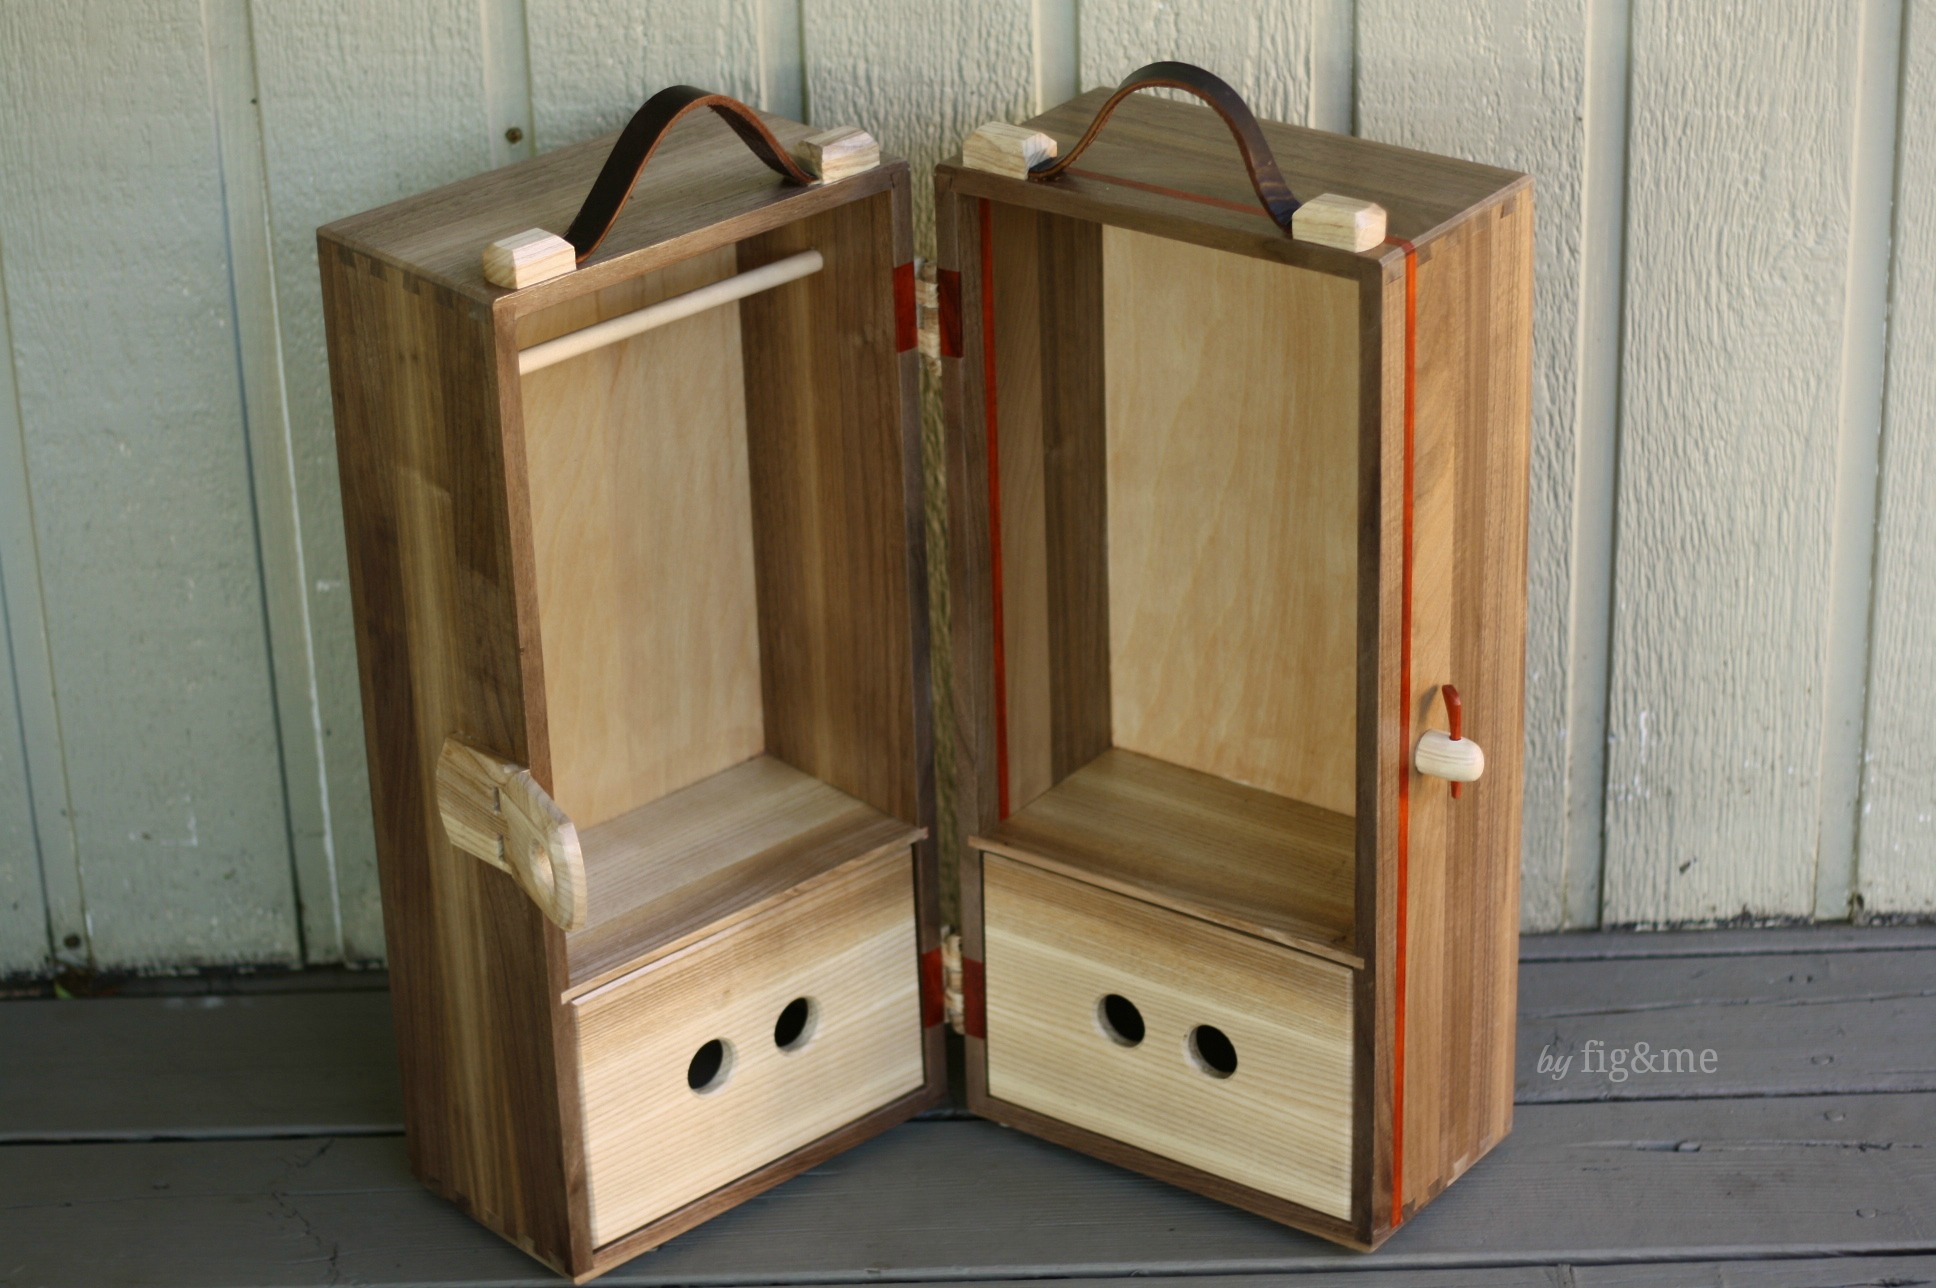 Wooden doll steam trunk for Amelie, by Fig and me.